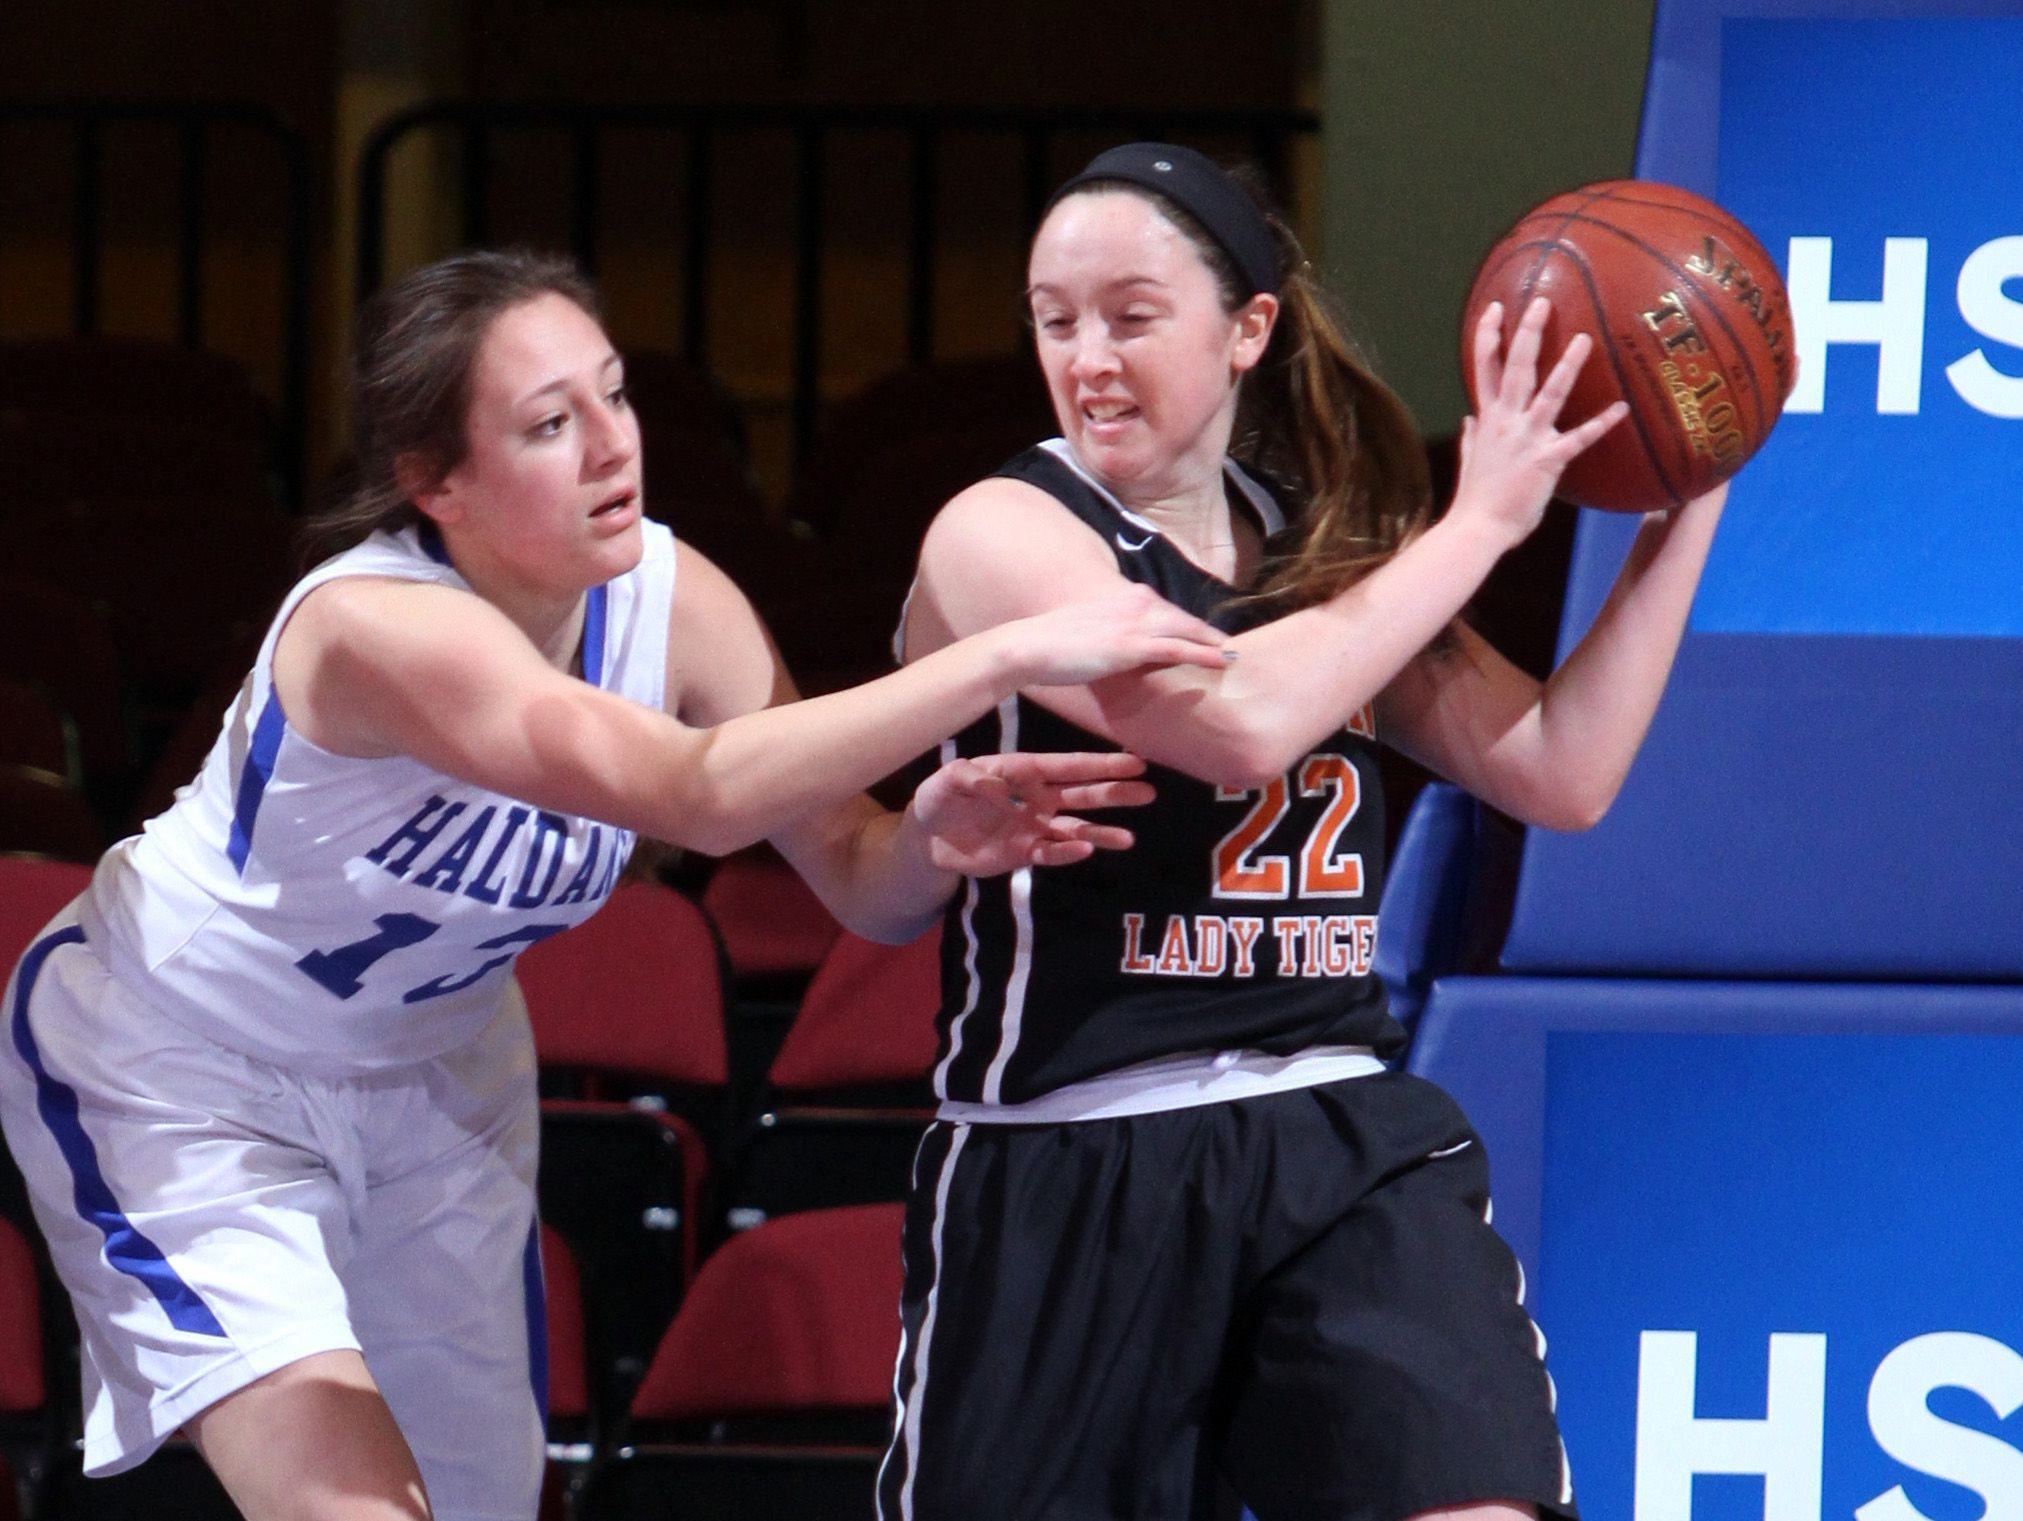 Haldane defeated Pawling 64-37 in a Section 1 Class C semifinal basketball game at the Westchester County Center Feb. 28, 2017.